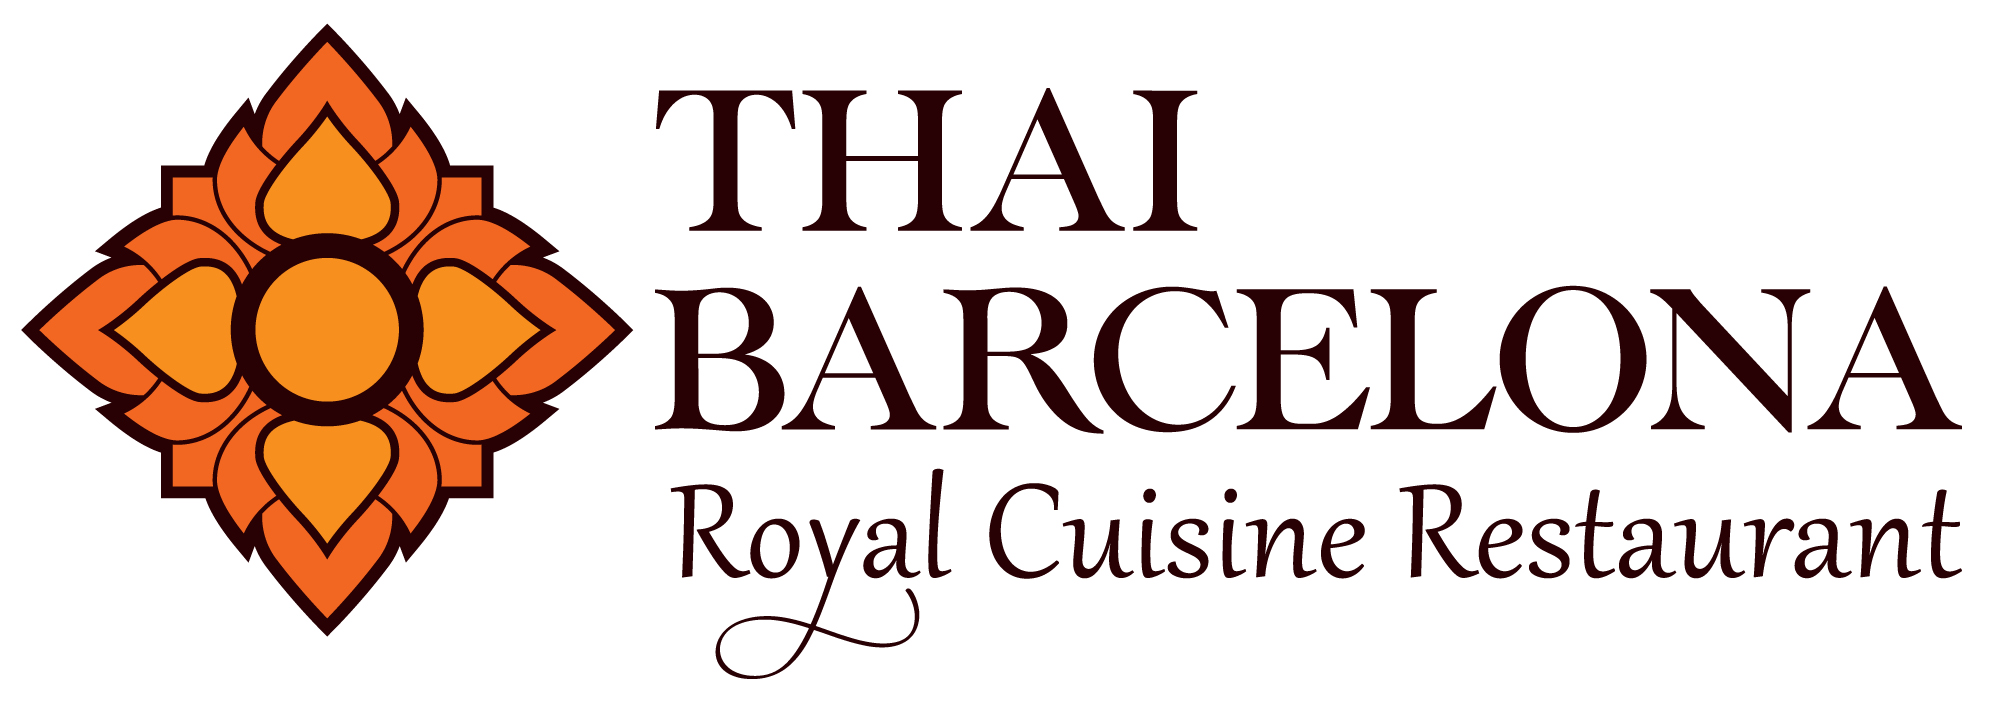 Logo Thai Barcelona big.[1]